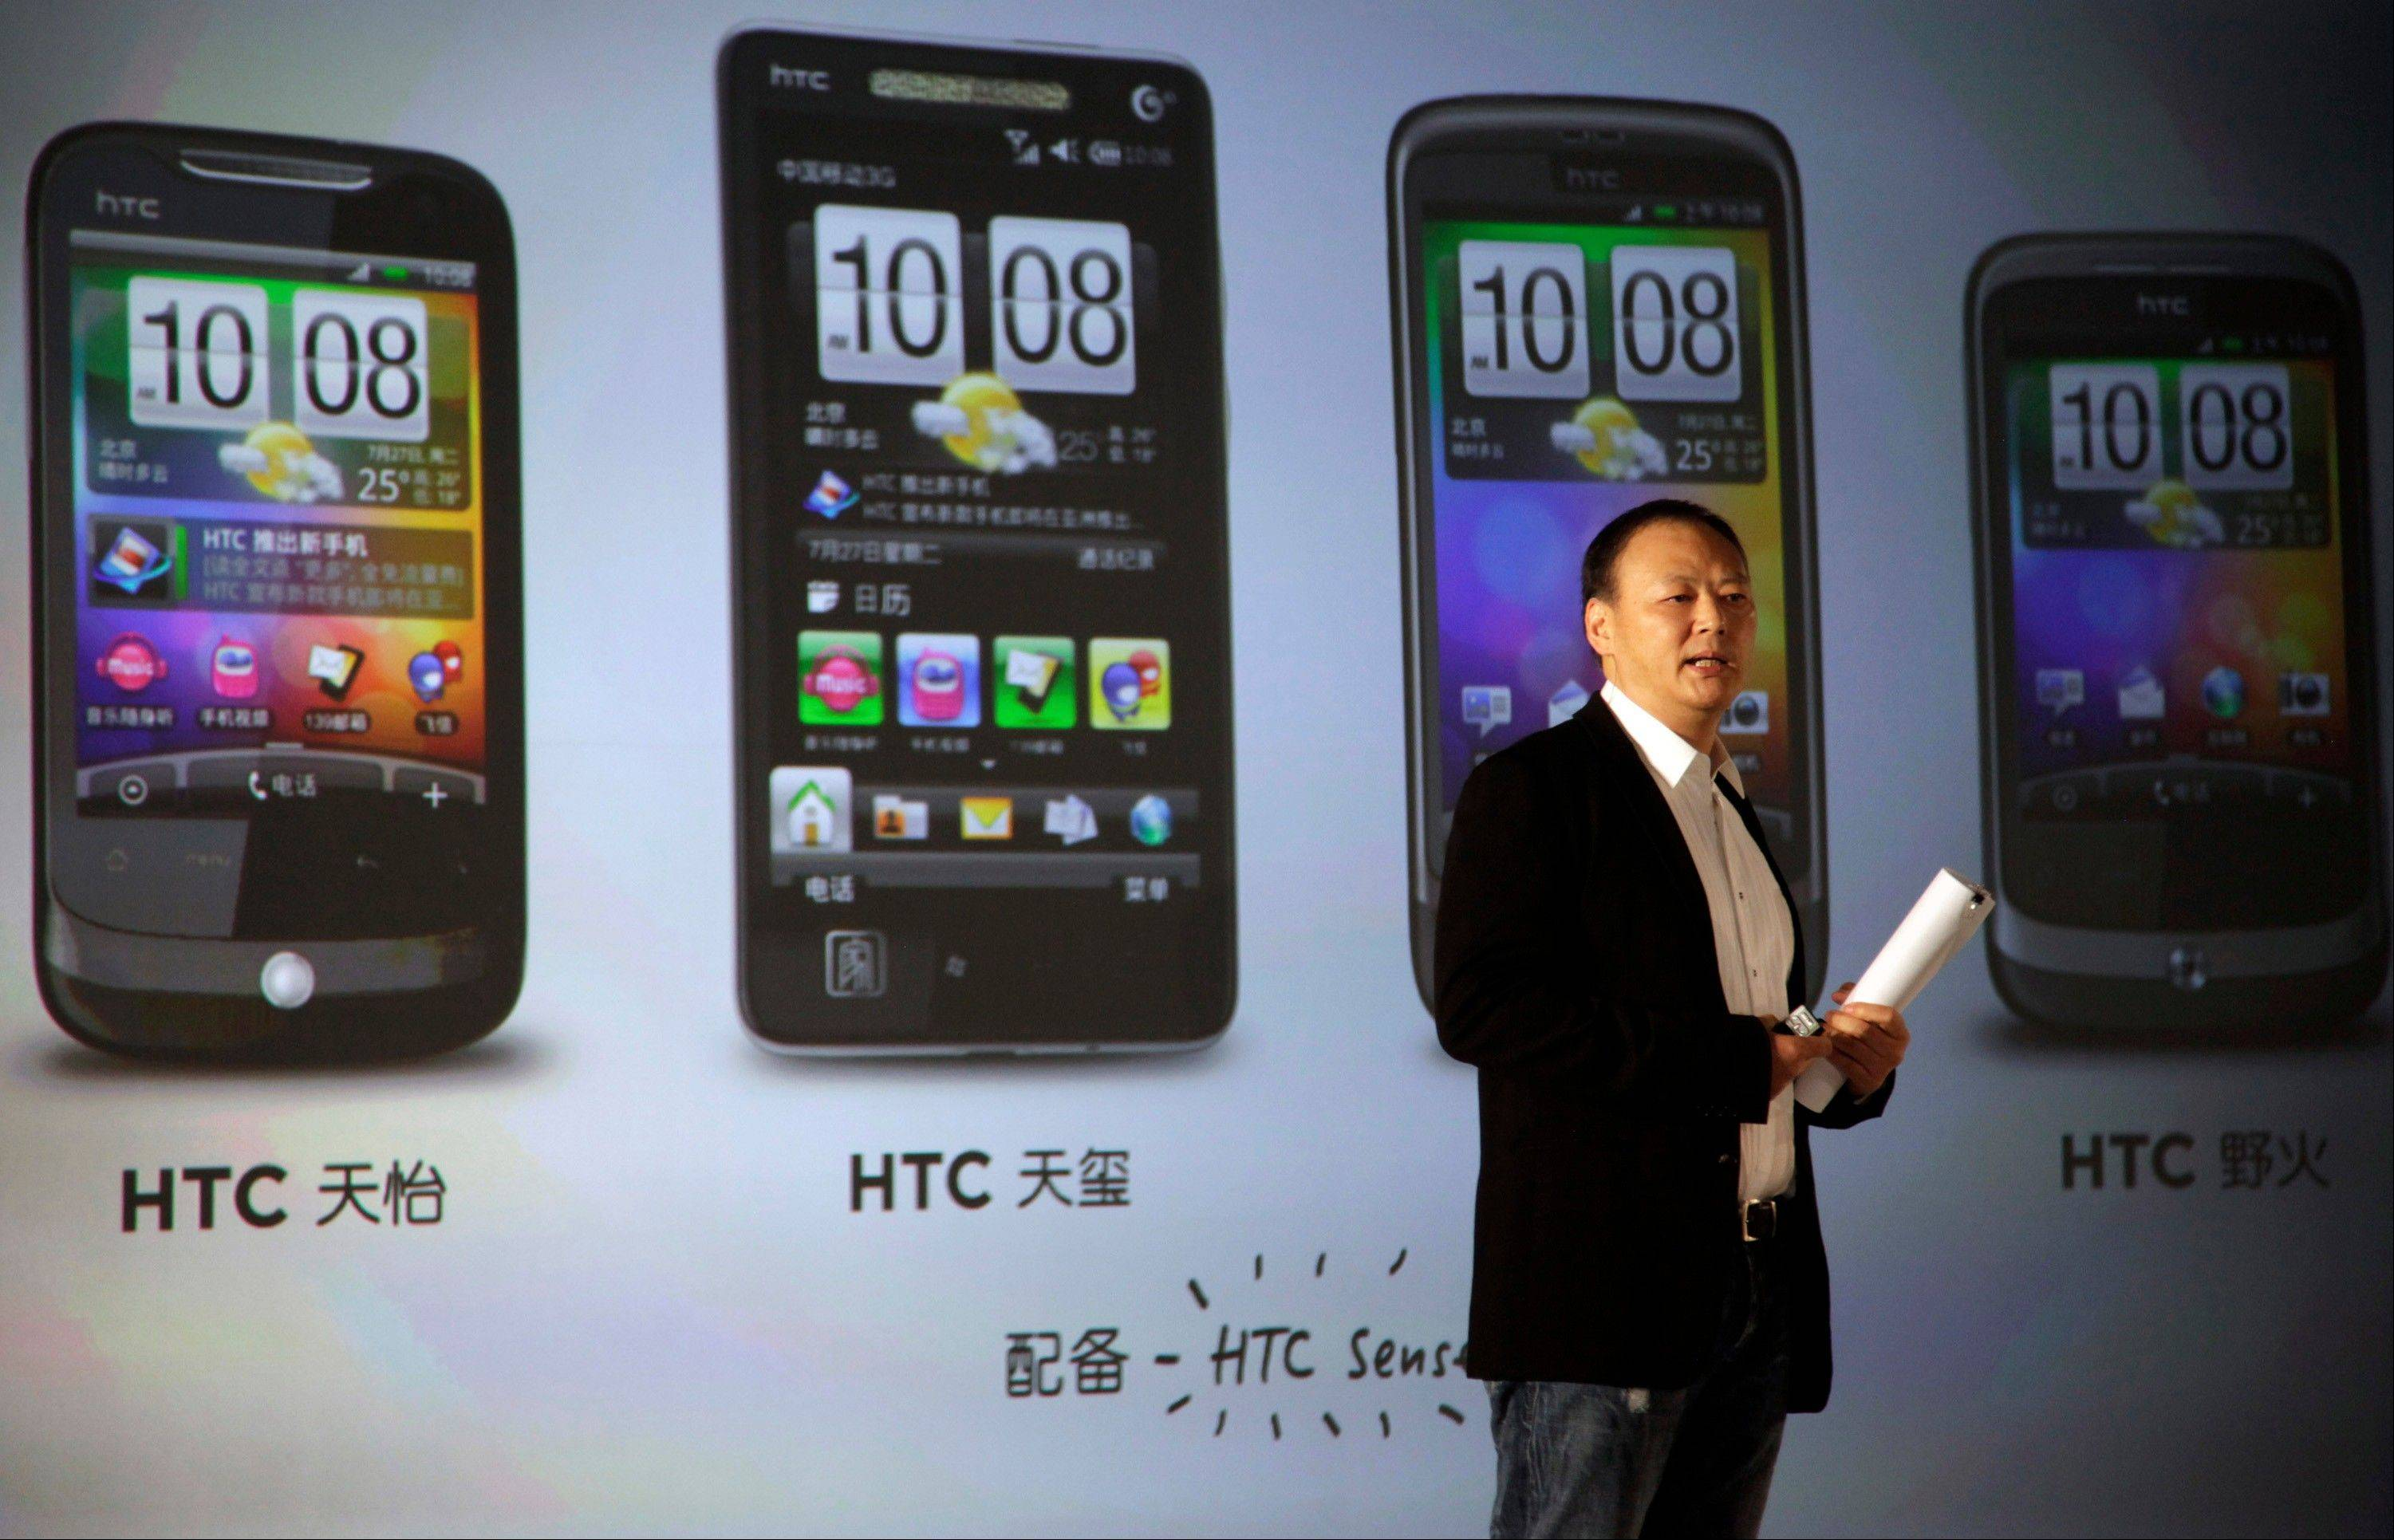 HTC Corp., led by CEO Peter Chou, has accused Apple Inc. of violating three patents covering smartphones and other technologies.